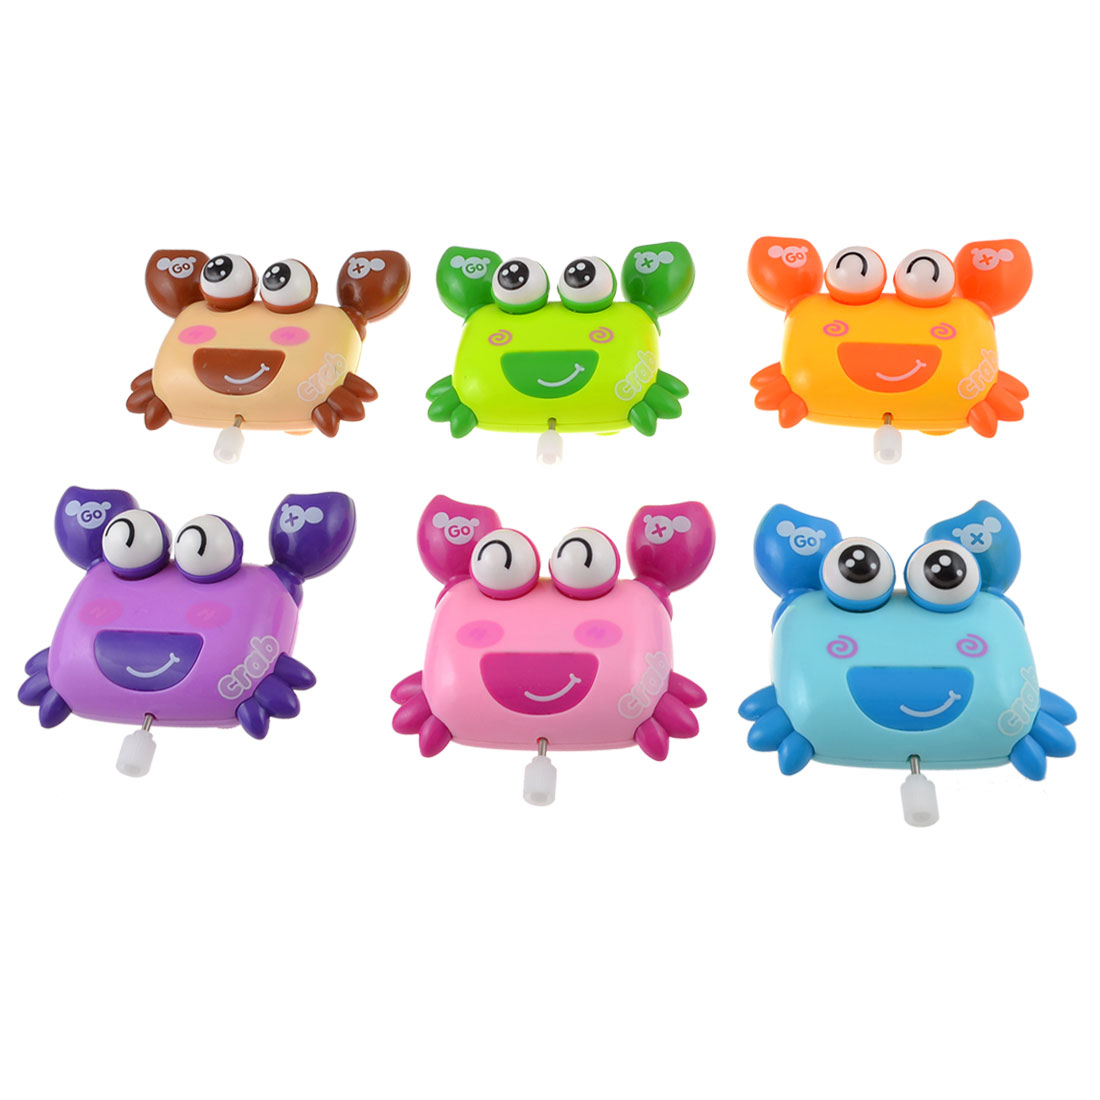 6 Pcs Assorted Color Plastic Cartoon Crab Wind Up Play Fun Toys for Children